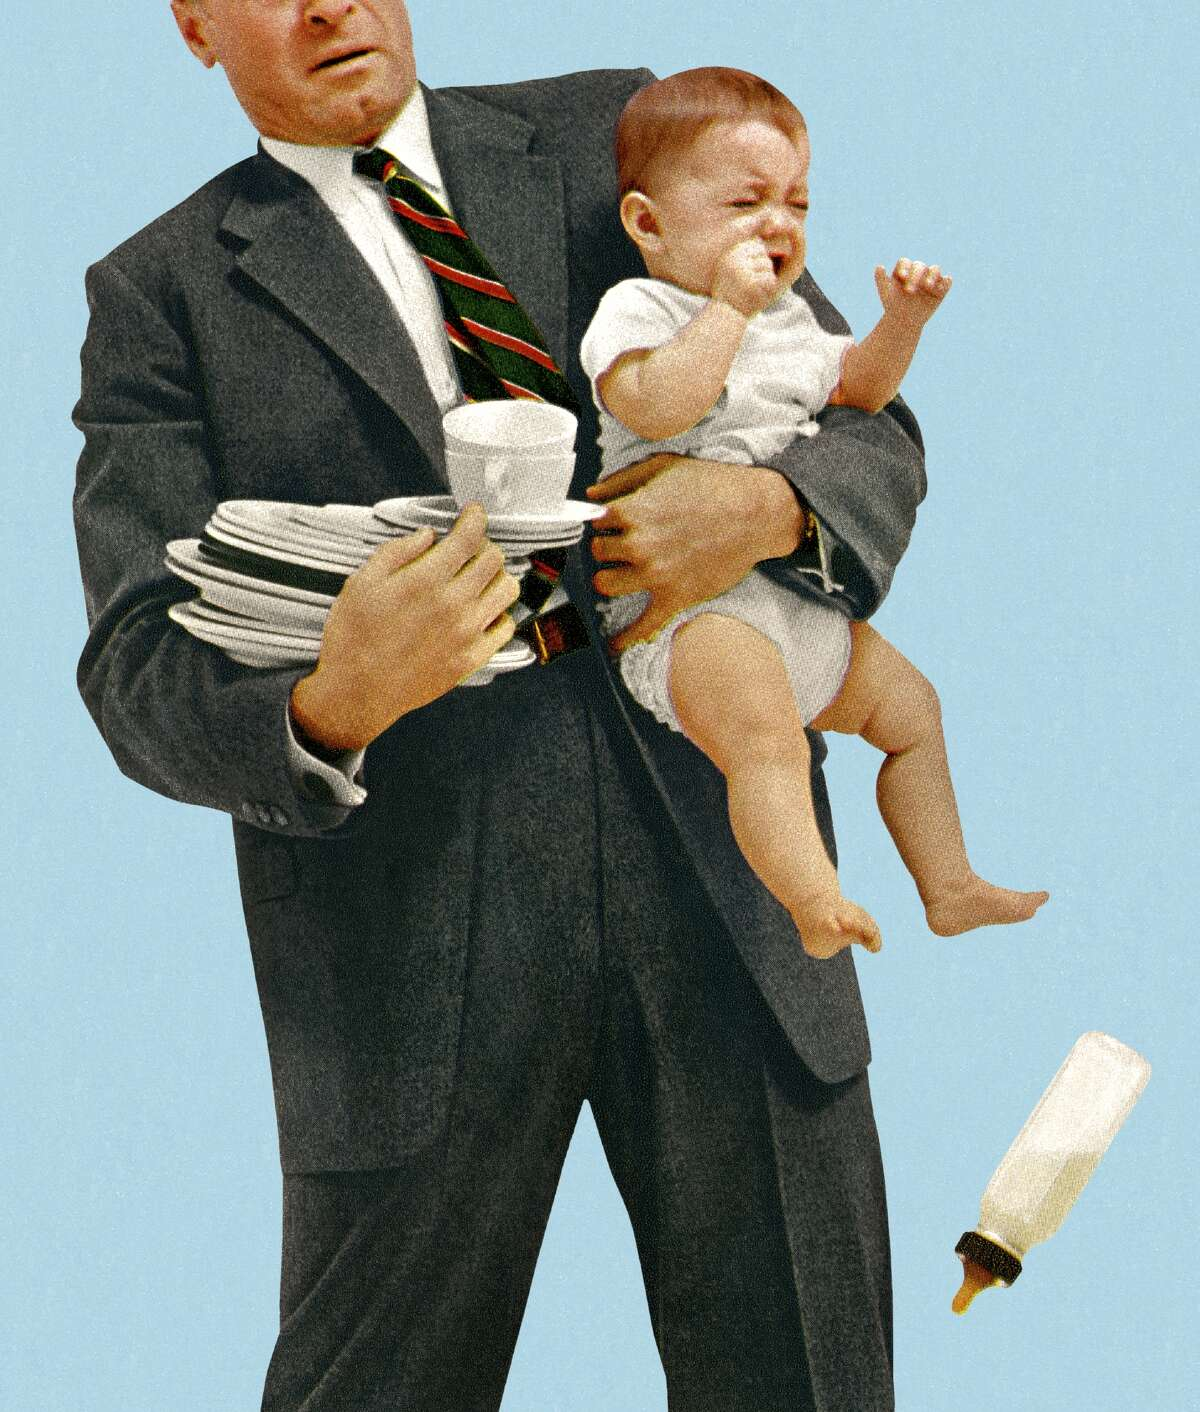 Caption: Man Struggling to Hold Baby and Dishes